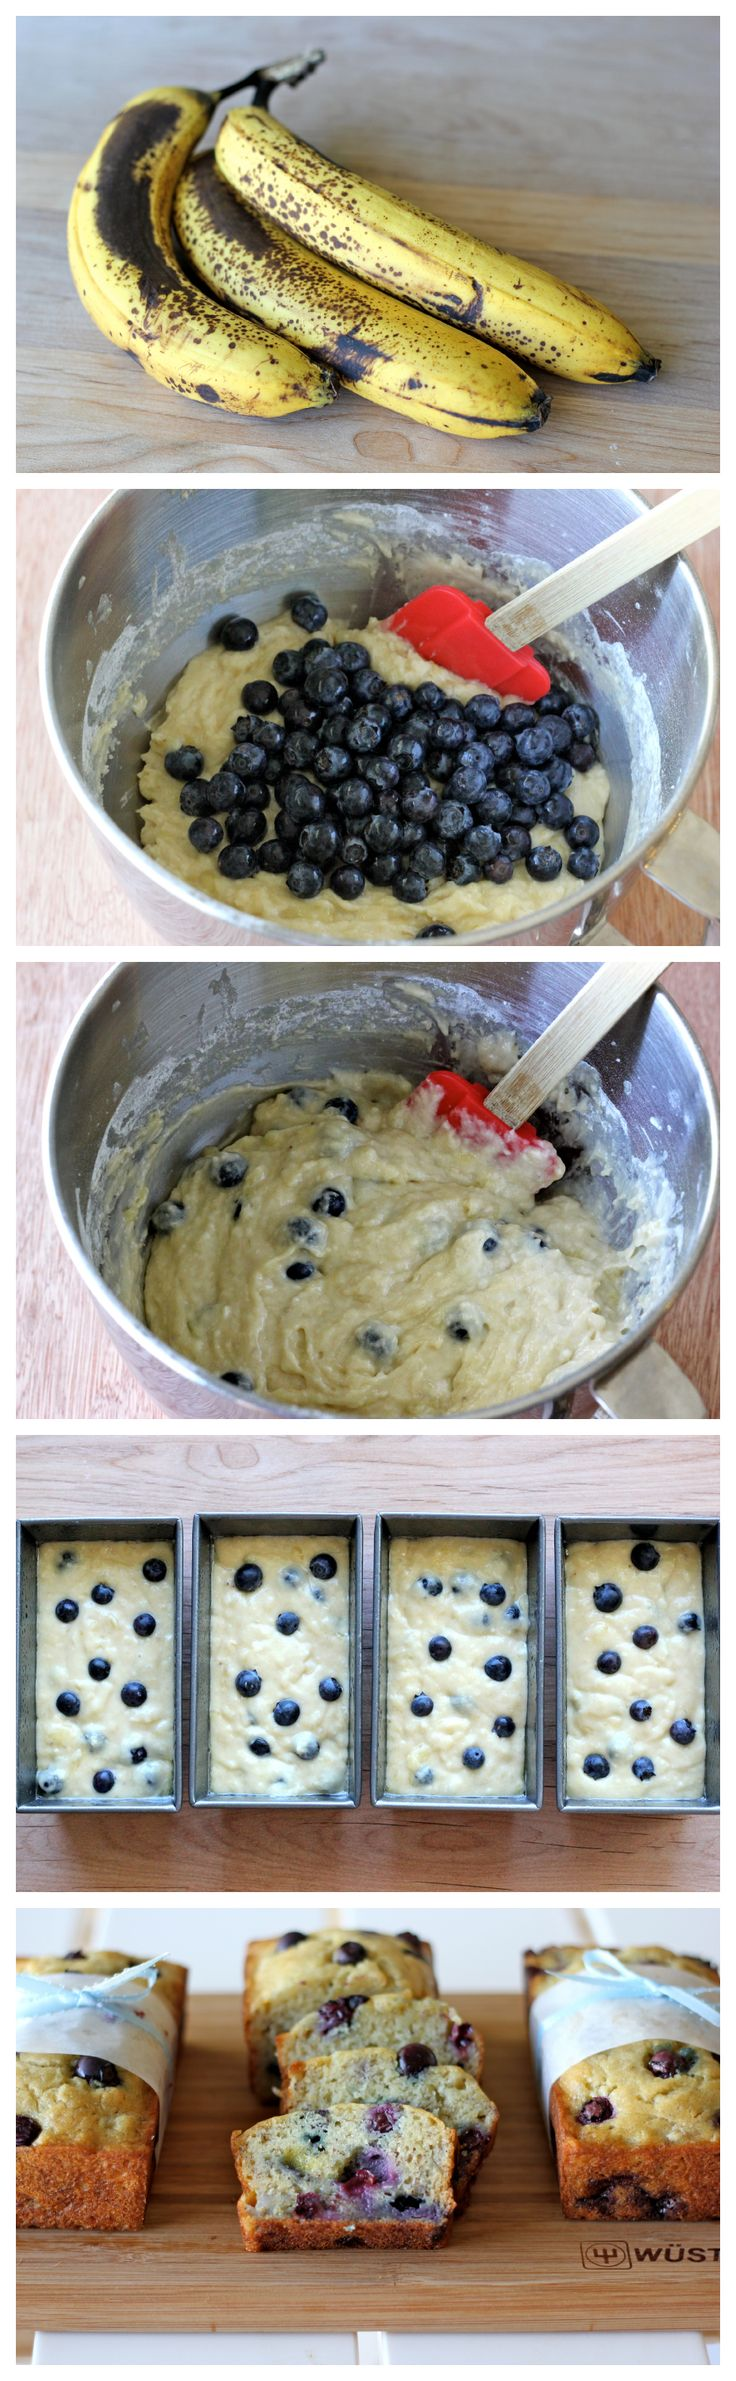 Buttermilk Banana Blueberry Bread - A great way to use up those spotty bananas, and the perfect holiday gift that everyone will love!